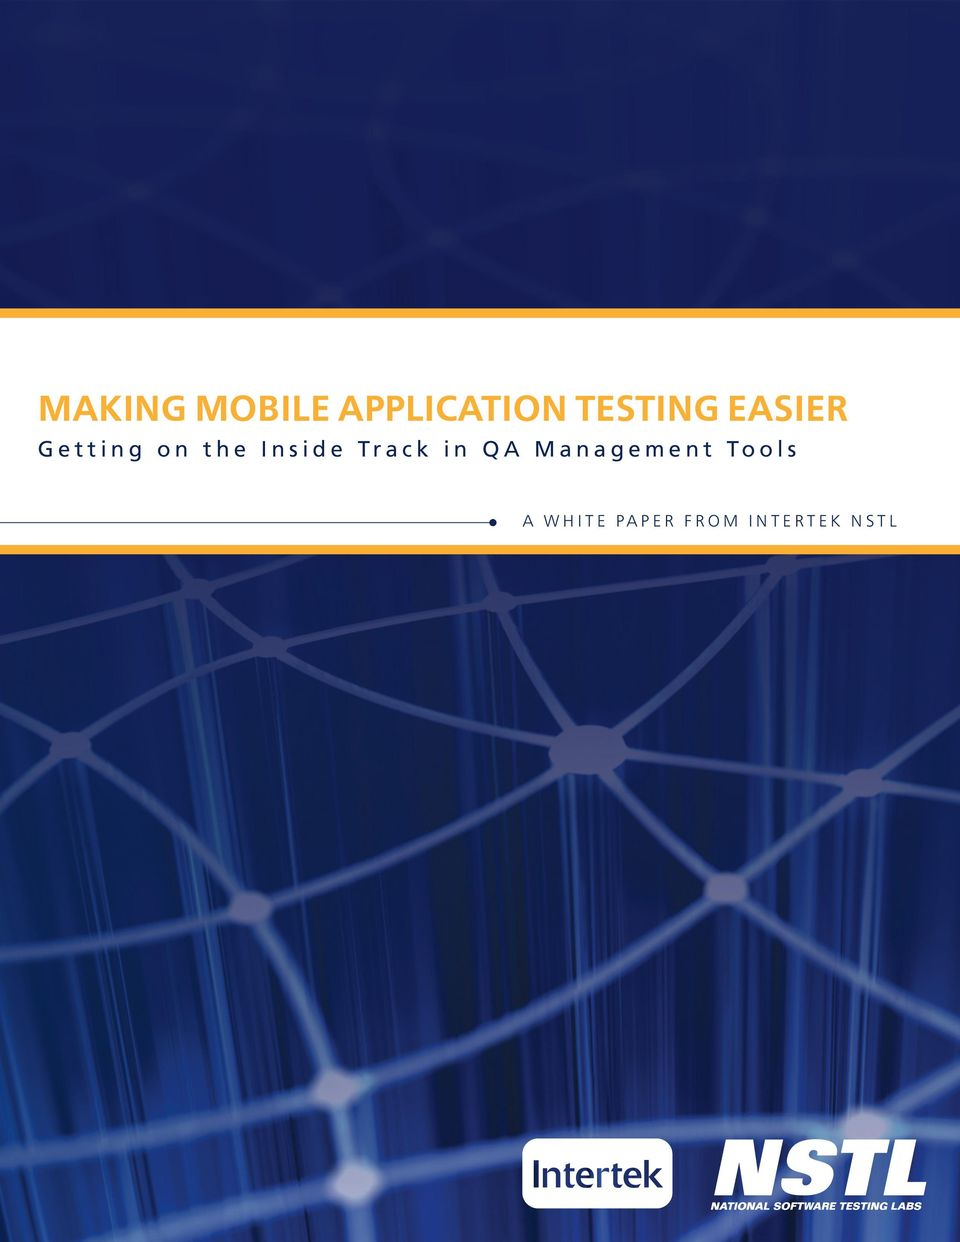 Inside Track in QA Management